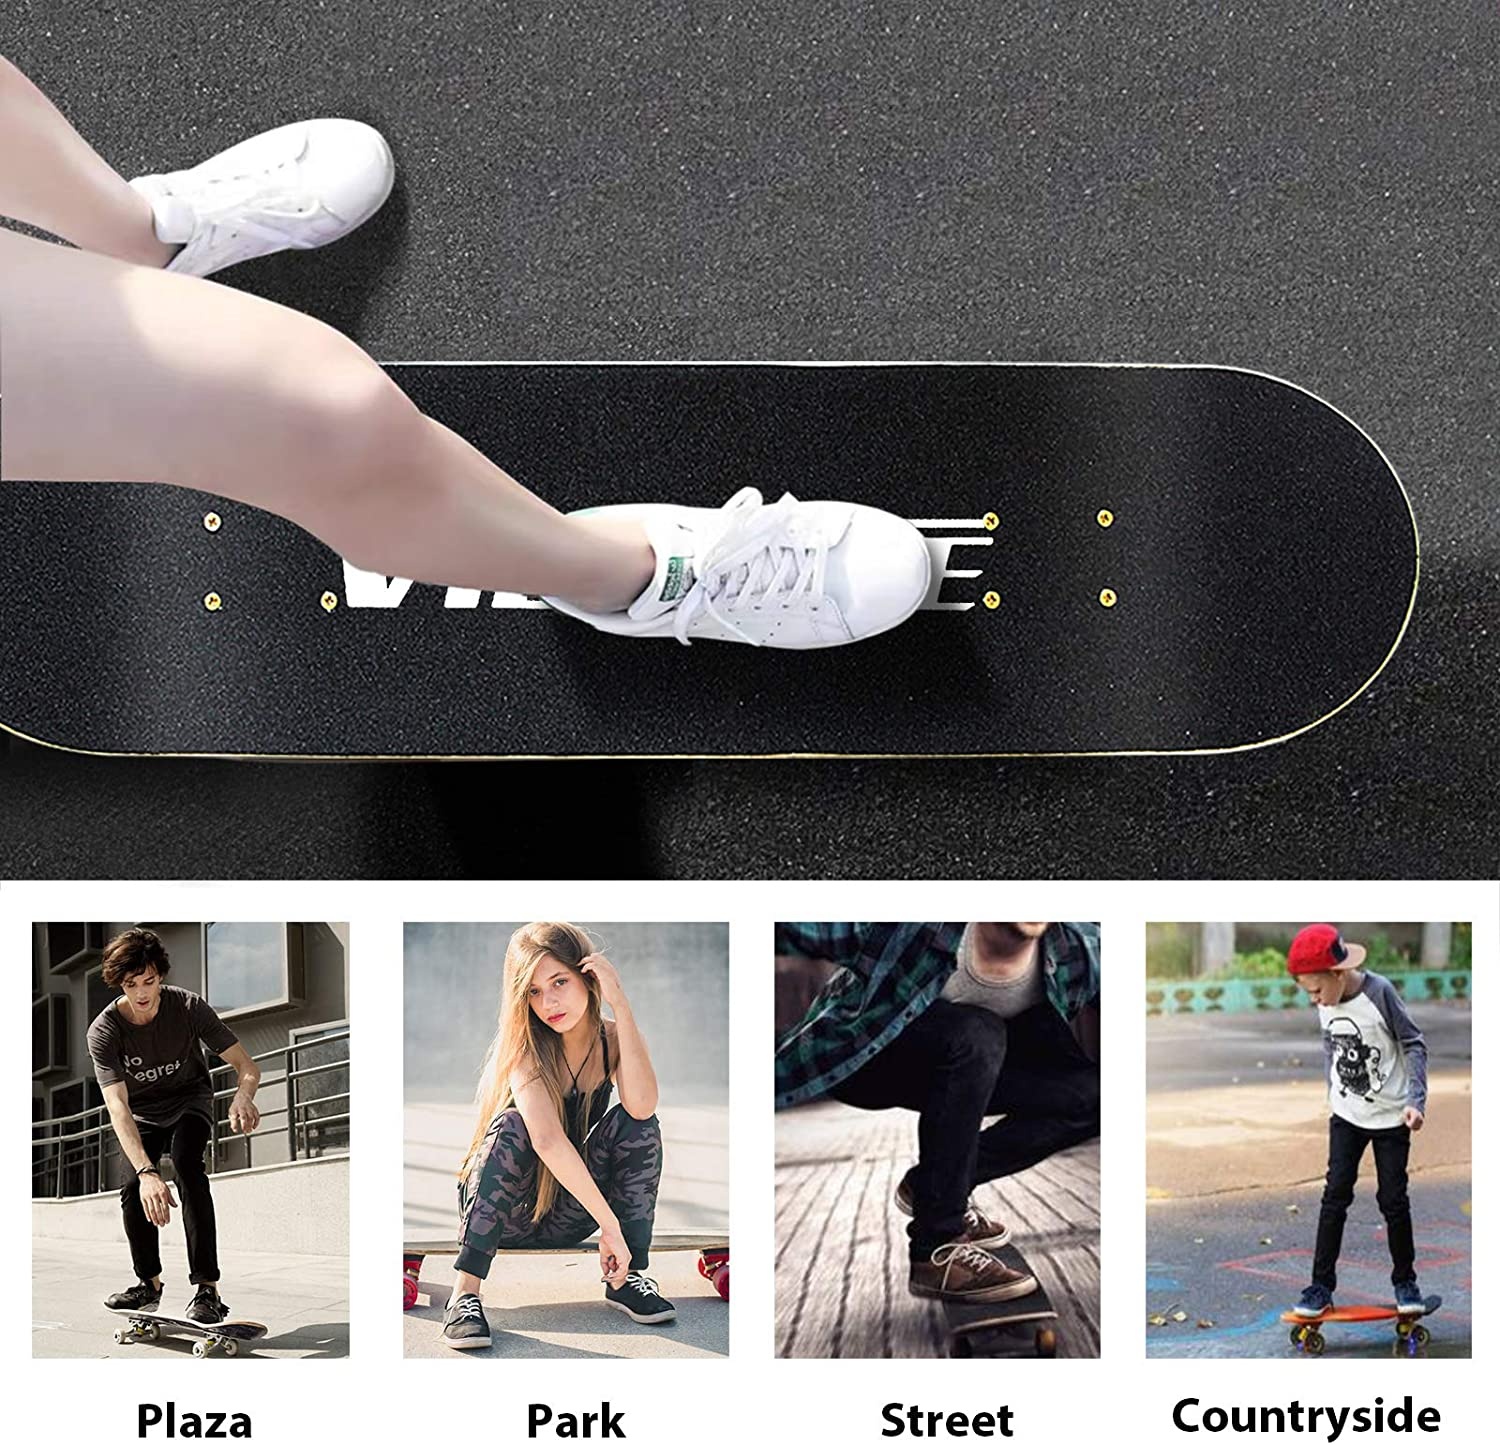 PHOEROS Skateboards 31/'/'x8/'/' Standard Skate Boards. Pro Cruiser Skateboards with 7-Layers Canadian Maple Double Kick Concave Deck Complete Skateboards for Beginners Kids Adults Boys Girls Teens